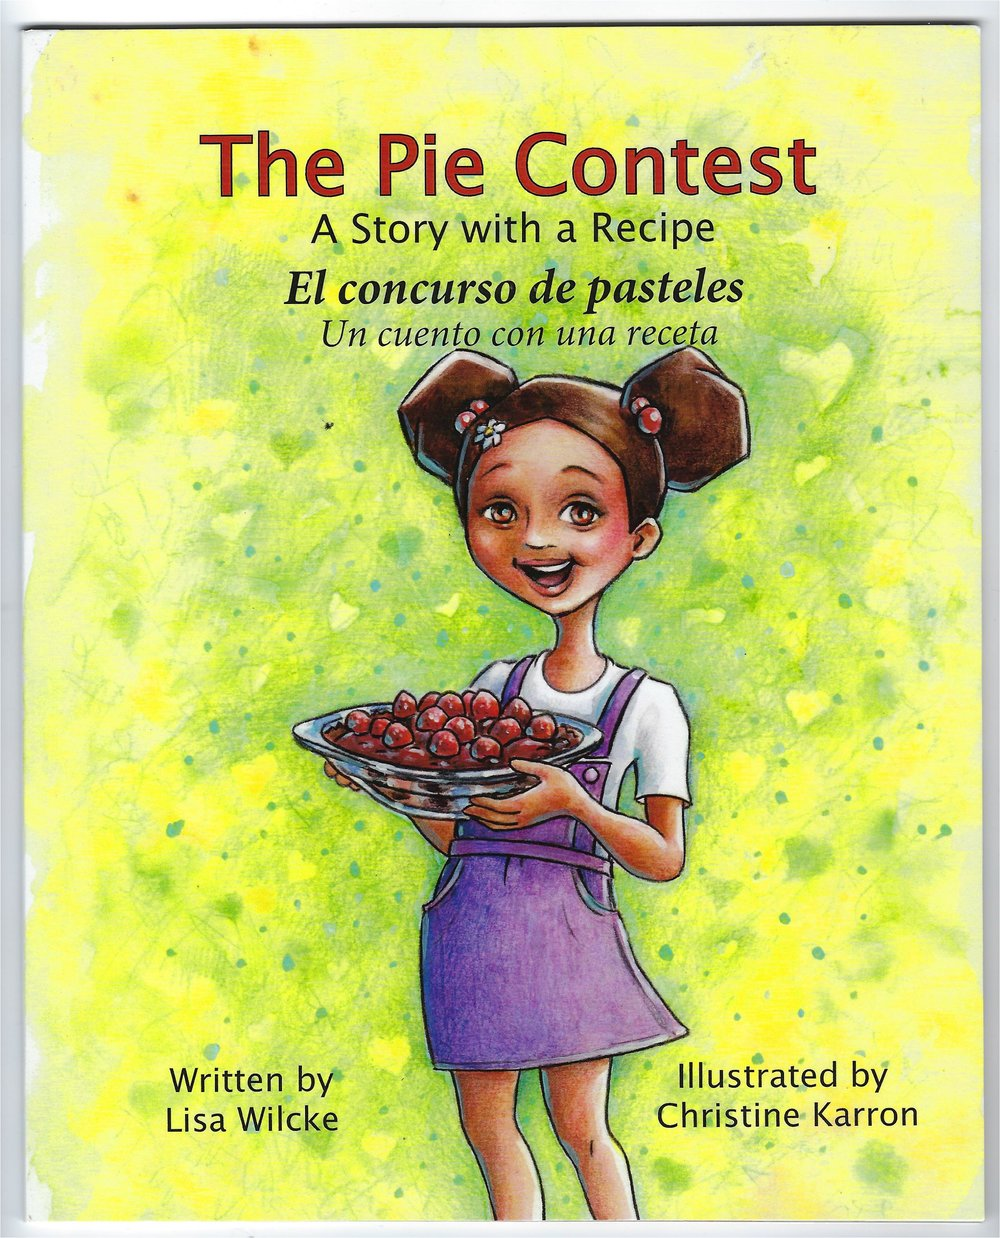 Pie Contest Spanish front cover.jpg